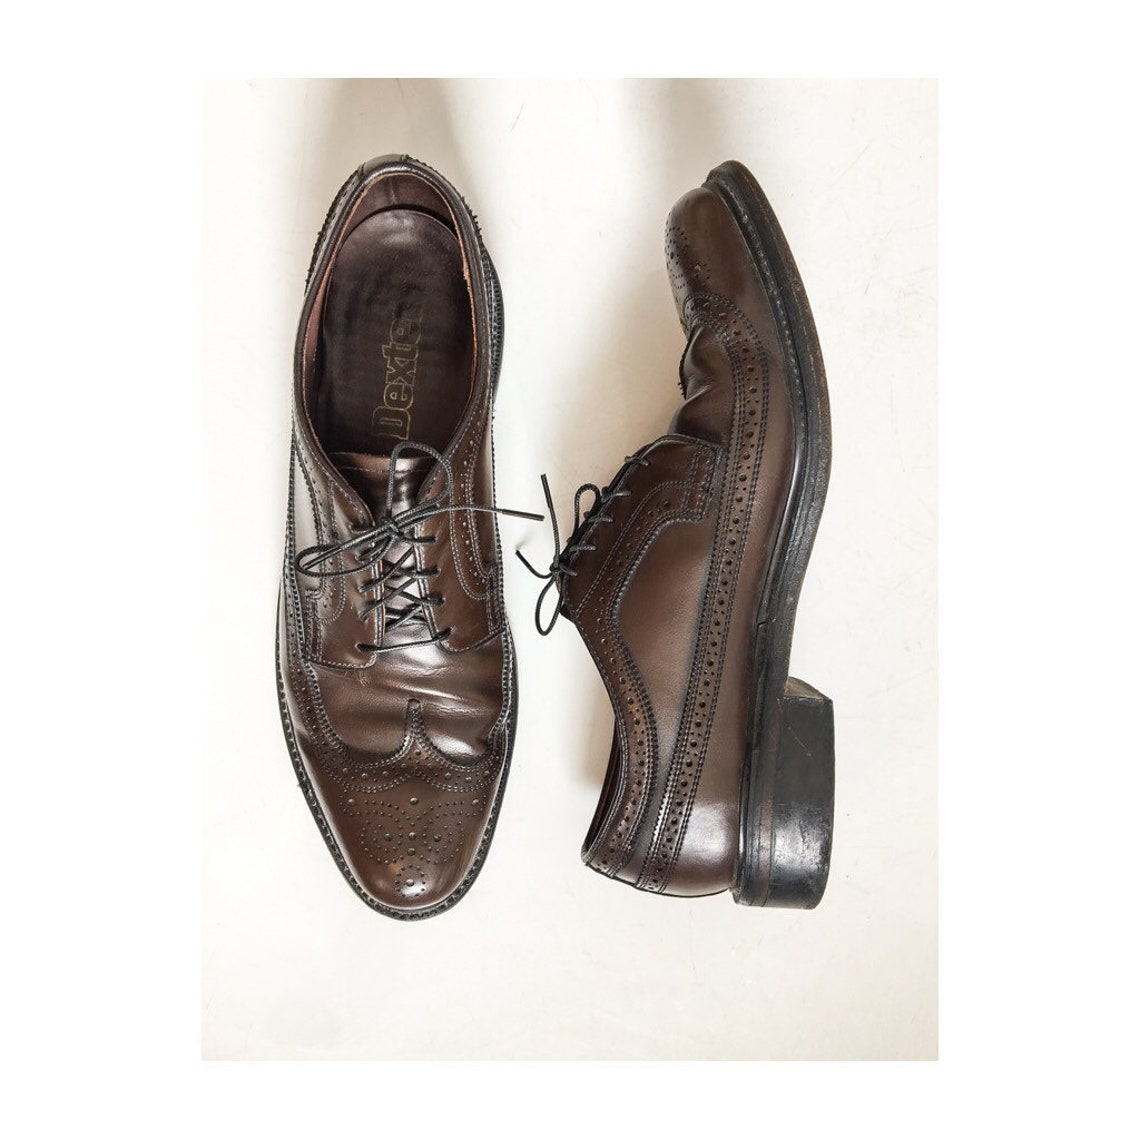 Vintage DEXTER Choclote Brown Longwing Blucher Derby Full Brogued Wingtips Gunboats / Dark Brown Dress Shoes / Mid Century Brogues Size 12 D - Scarpe alla moda N3PqTOqR omqylP sJpPiL